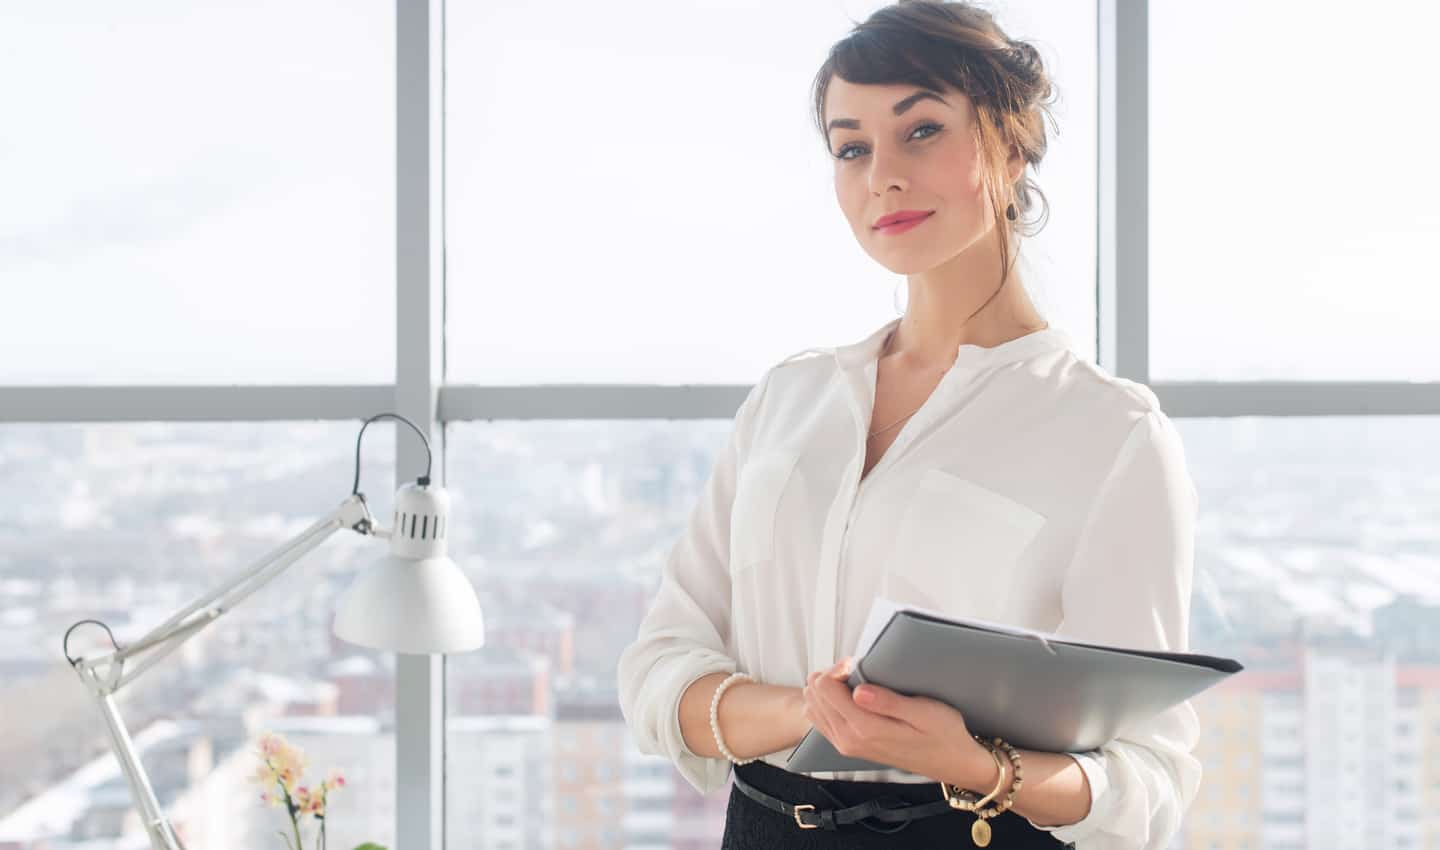 woman standing confidently at work